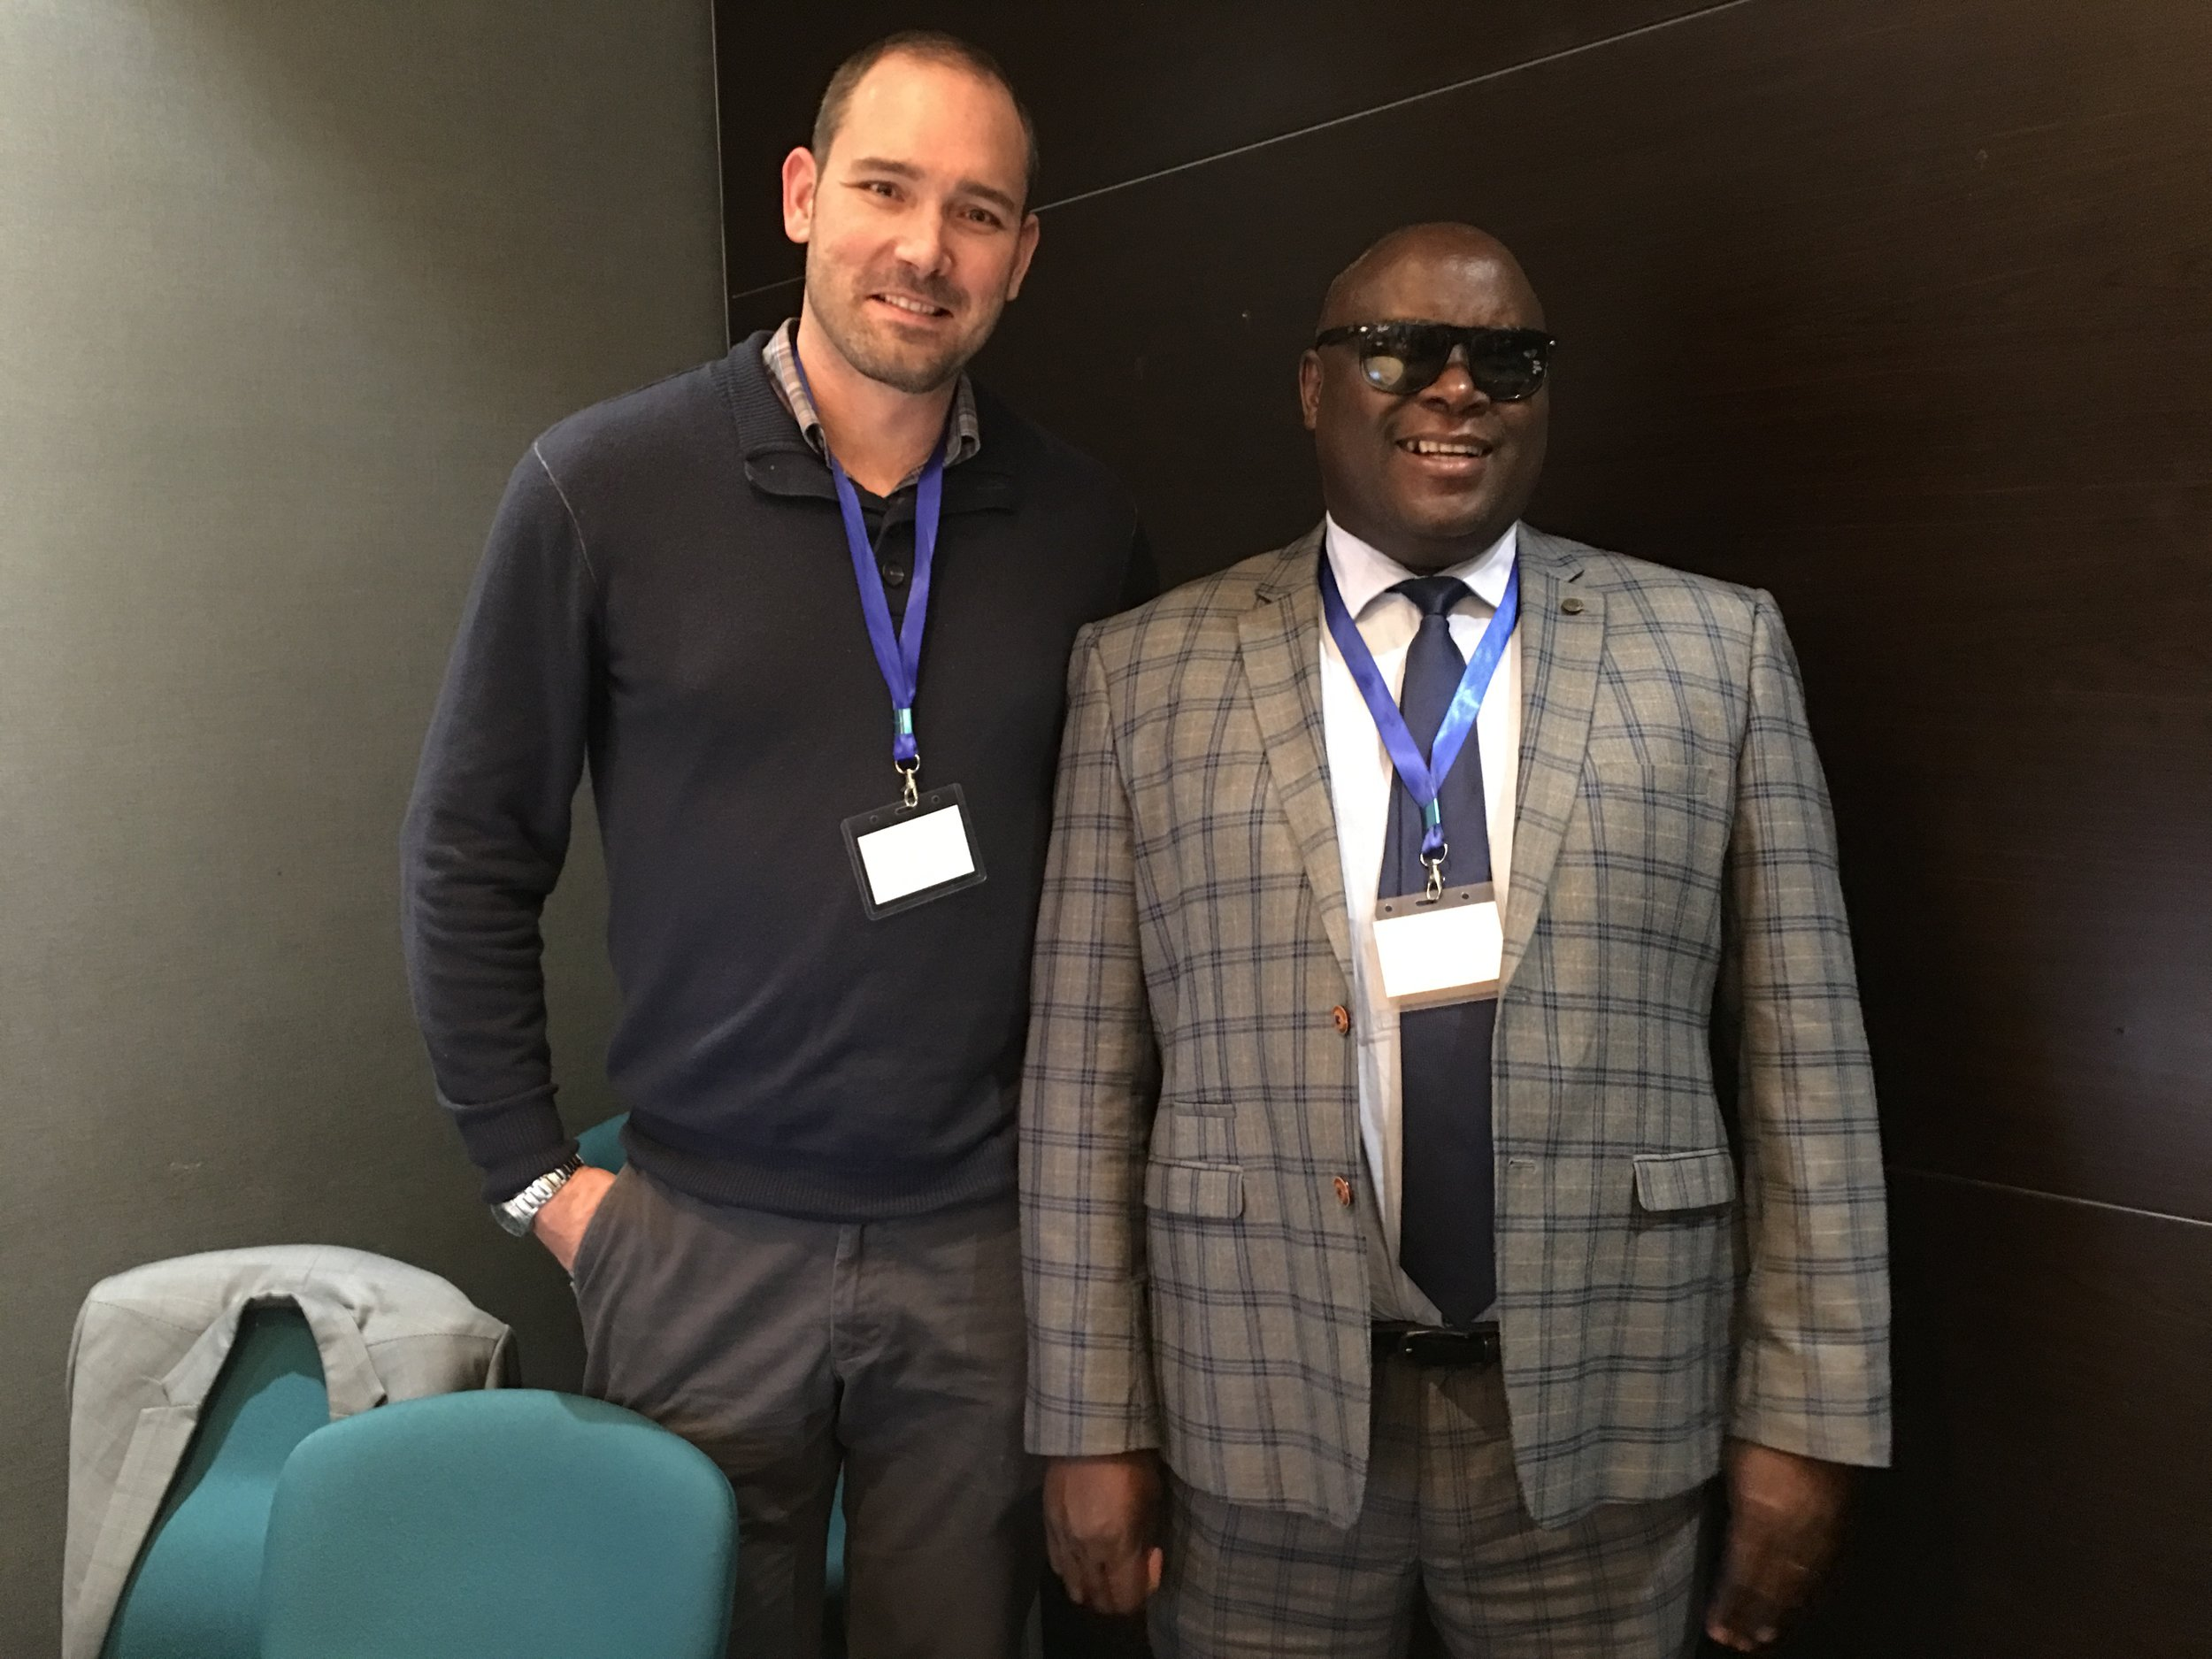 Brent Elder of Rowan University and Tangata Group (left) and Fred Haga, the Kenyan Deputy Director in the Directorate of Special Needs Education (right) pose for a picture.